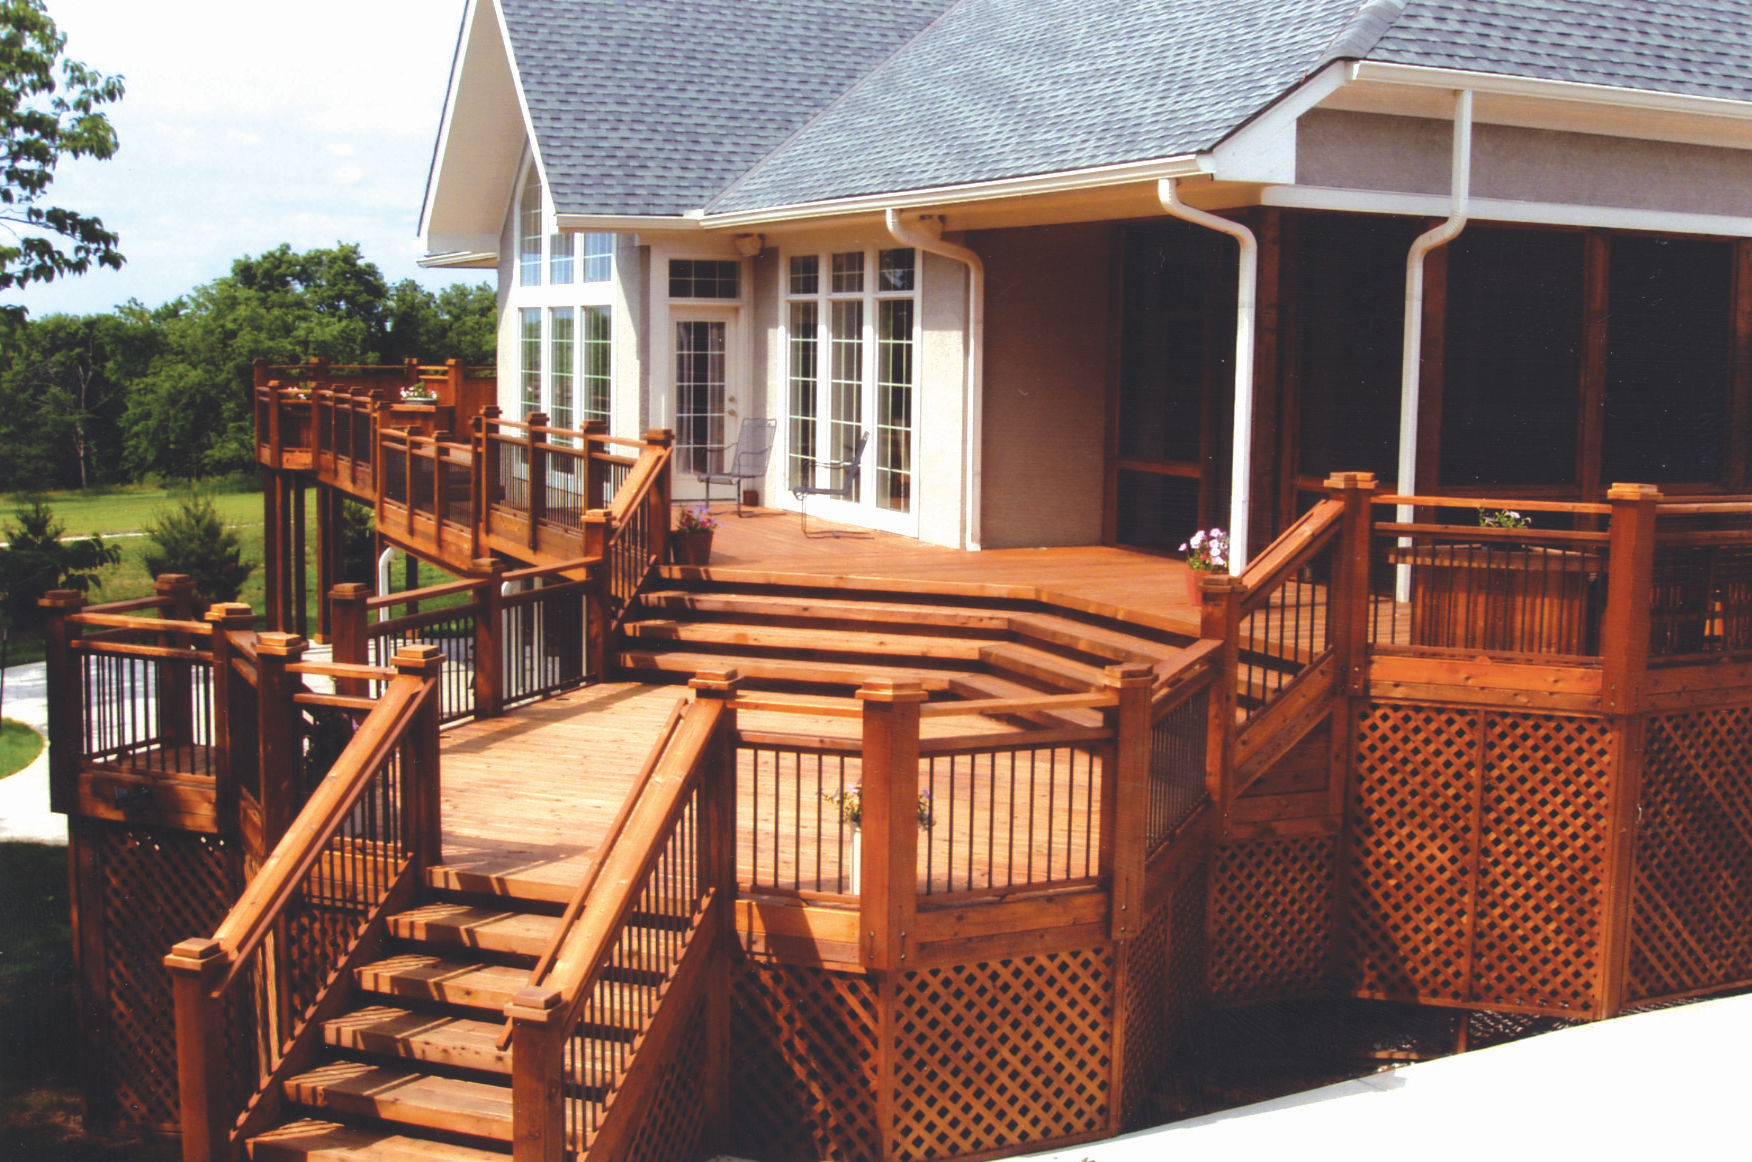 Outdoor Deck Planning - quinju.com